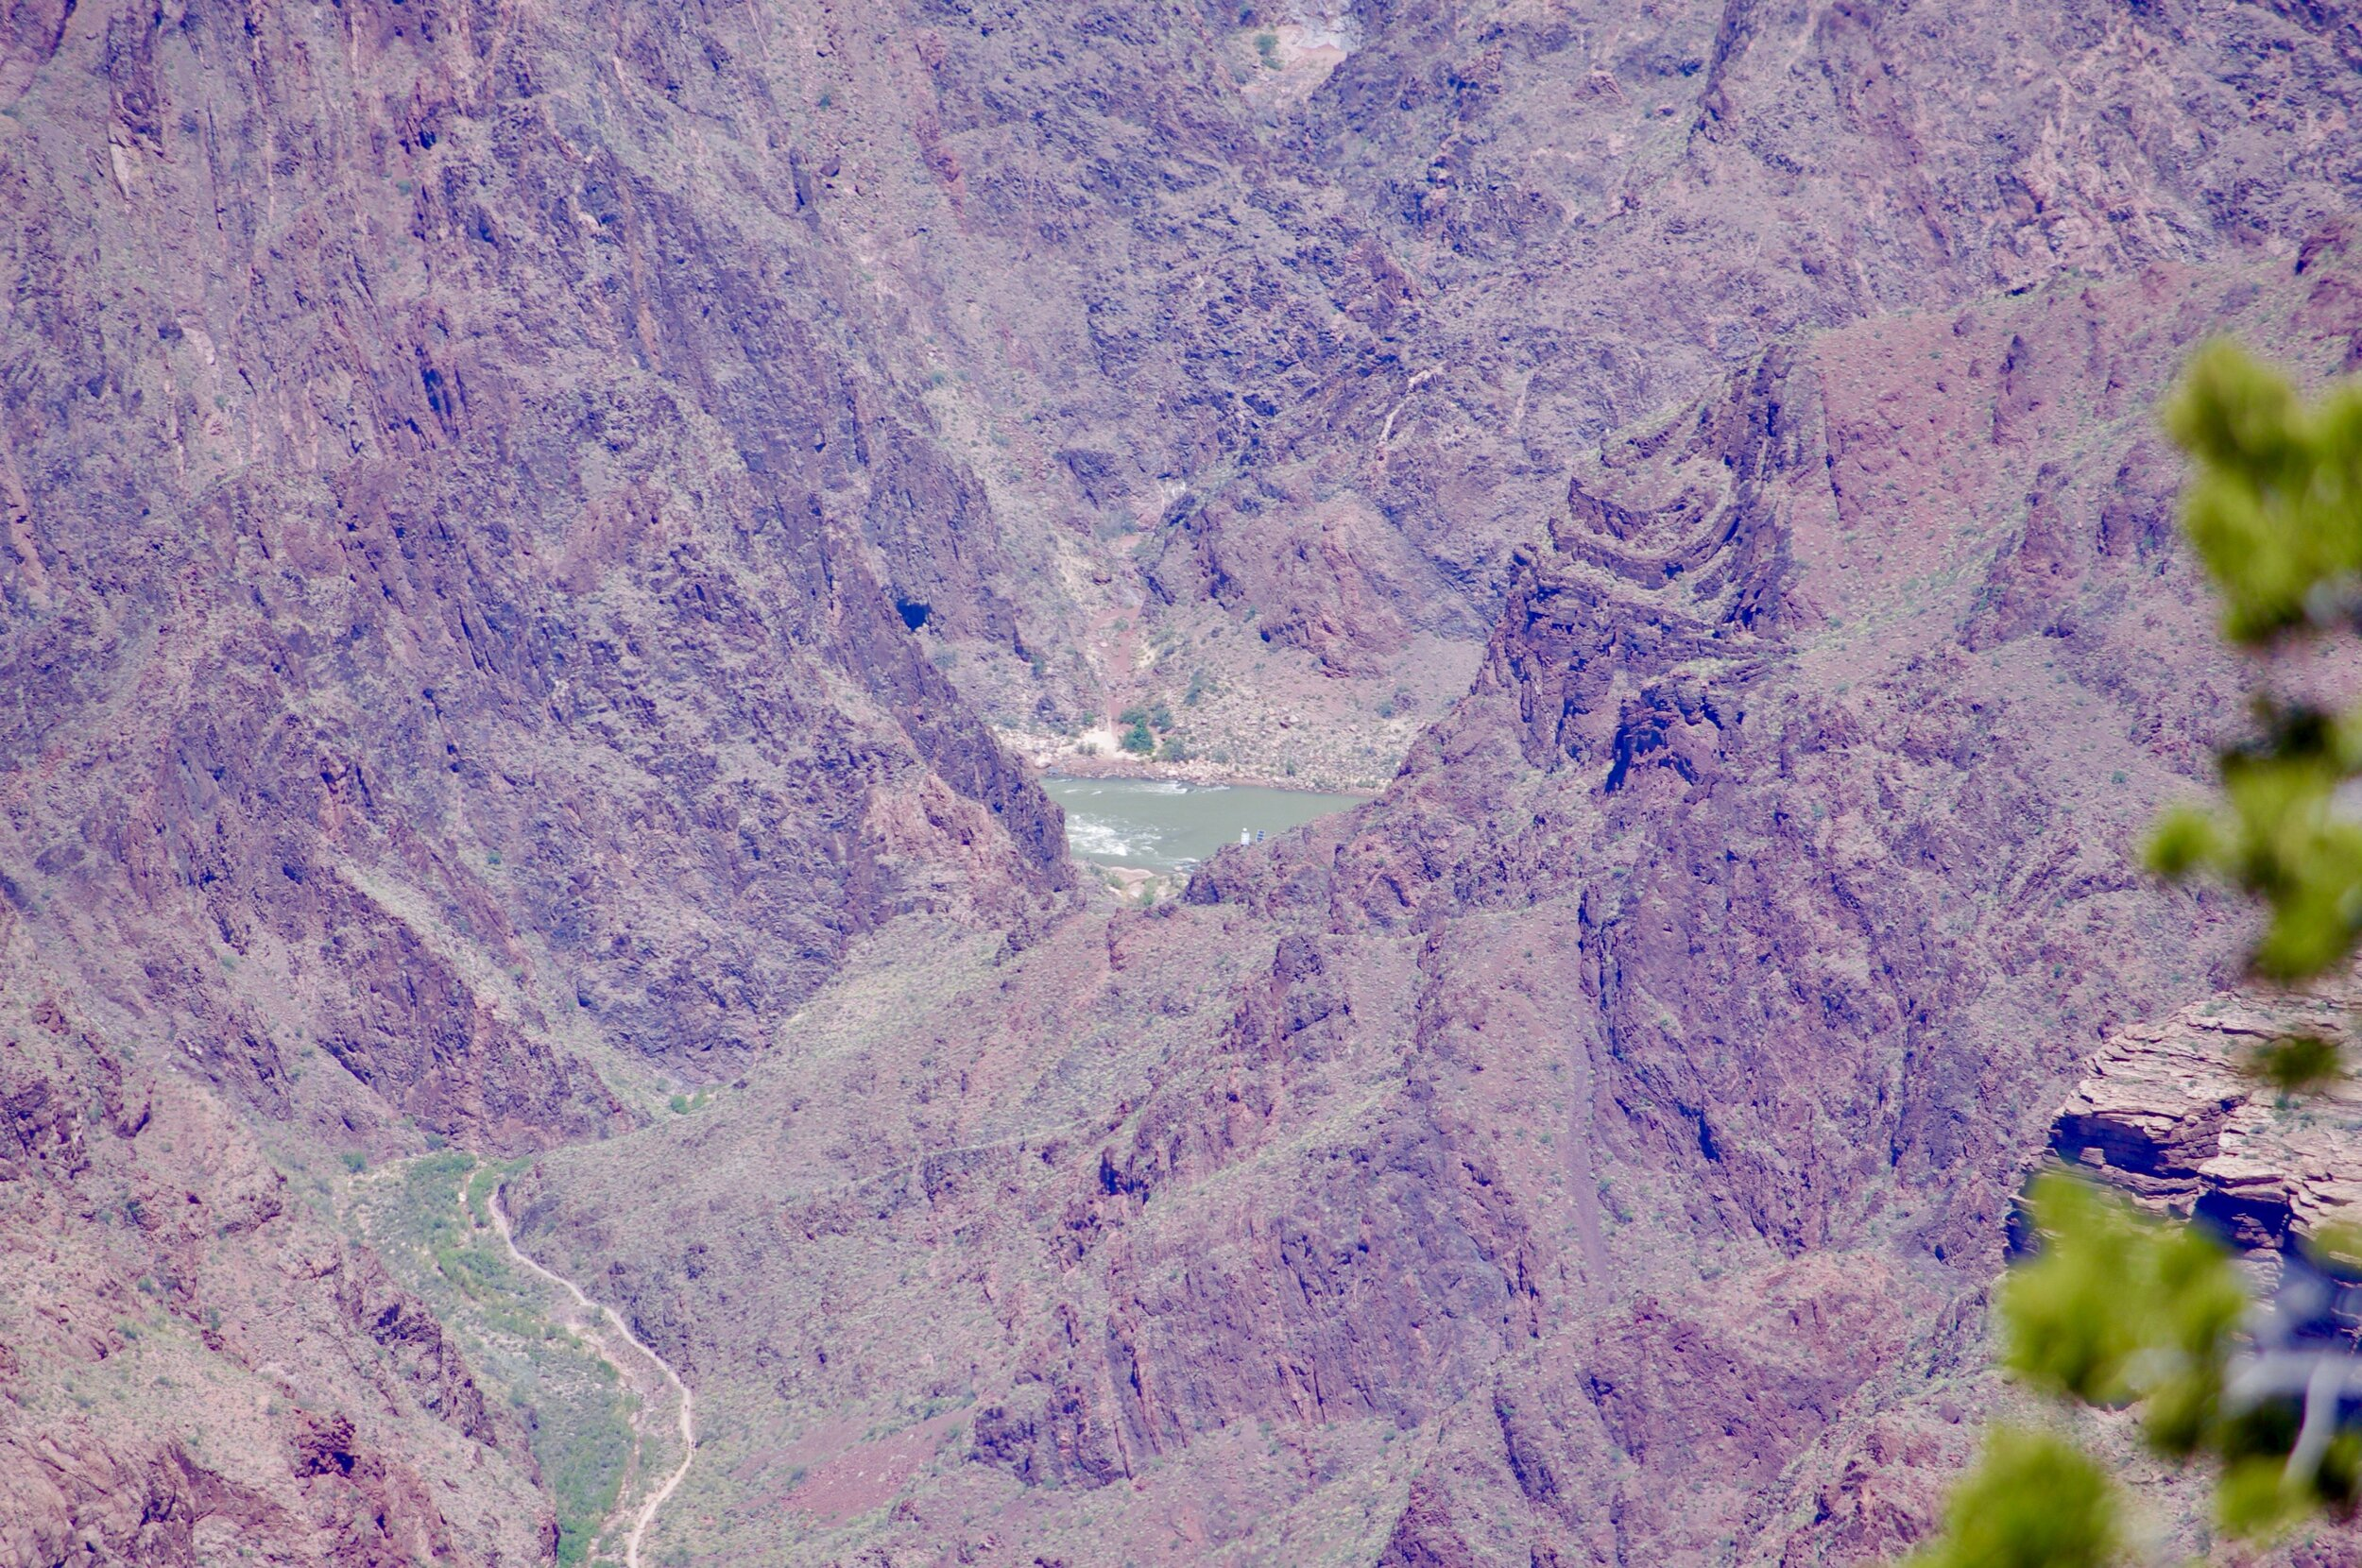 Here is the Mighty Colorado flowing through the Grand Canyon.